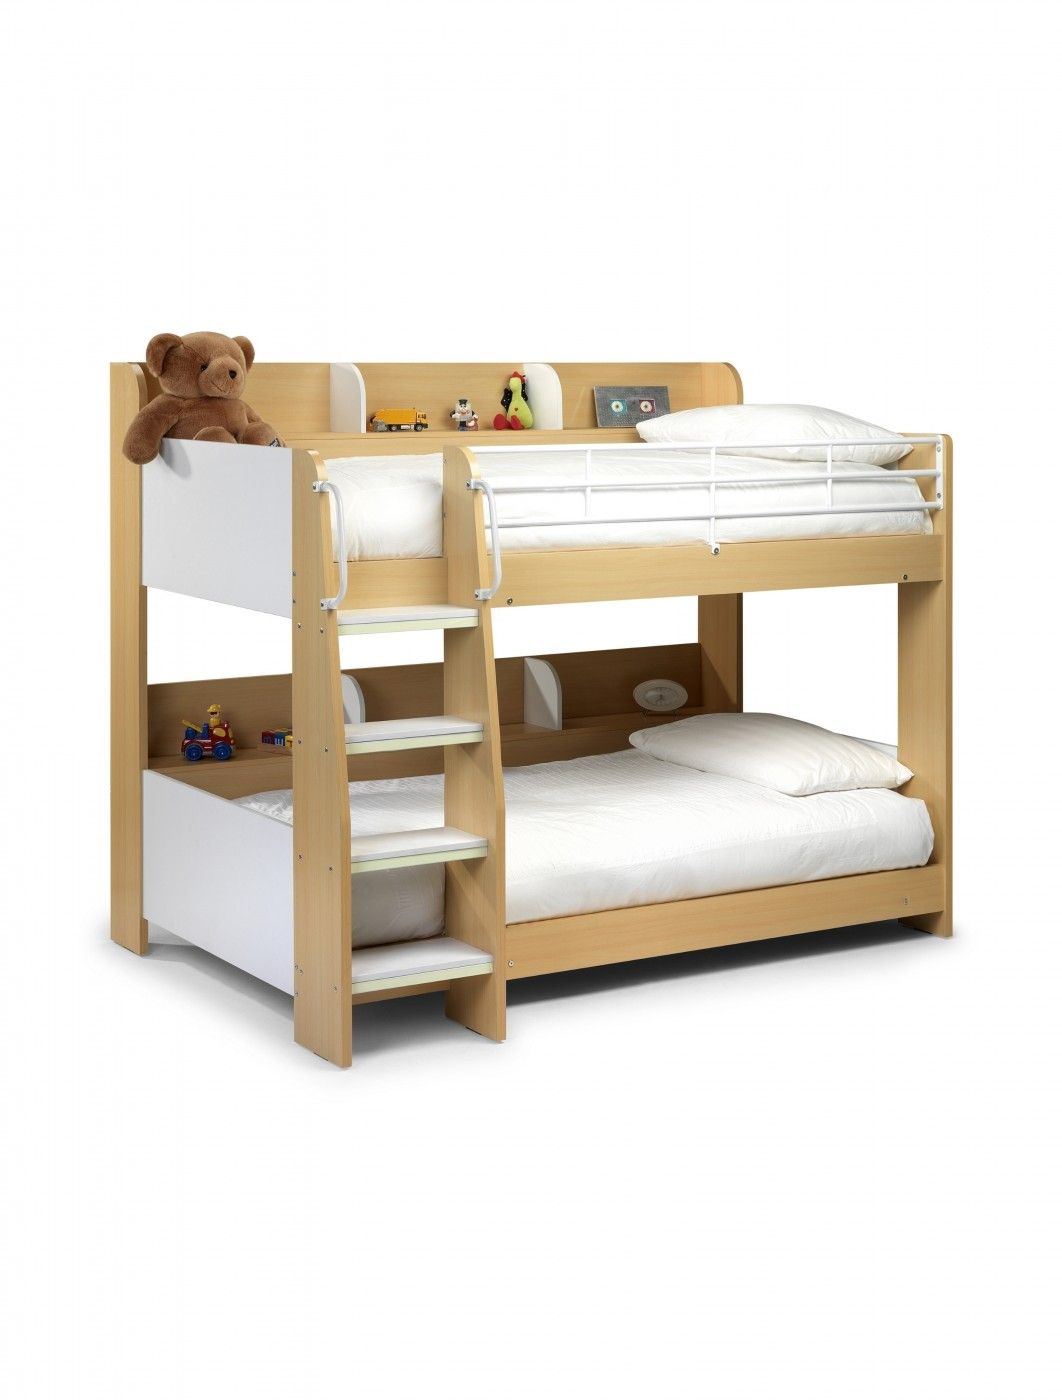 Childrens Beds childrens beds